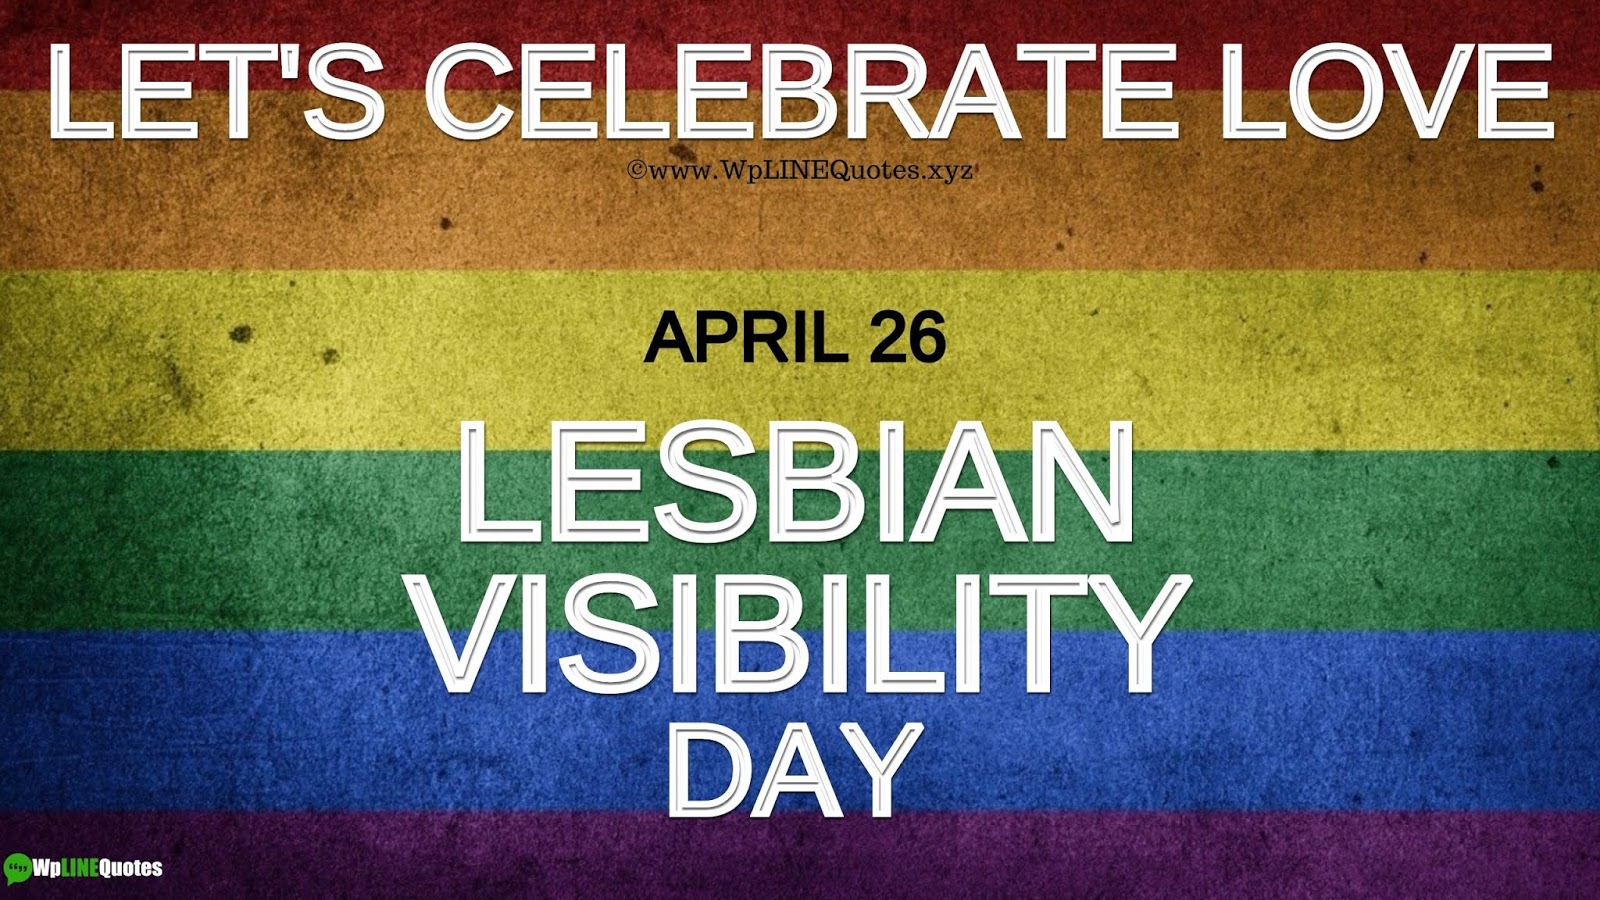 Lesbian Visibility Day-Week Quotes, History, Images, Pictures, Photos, Wallpaper